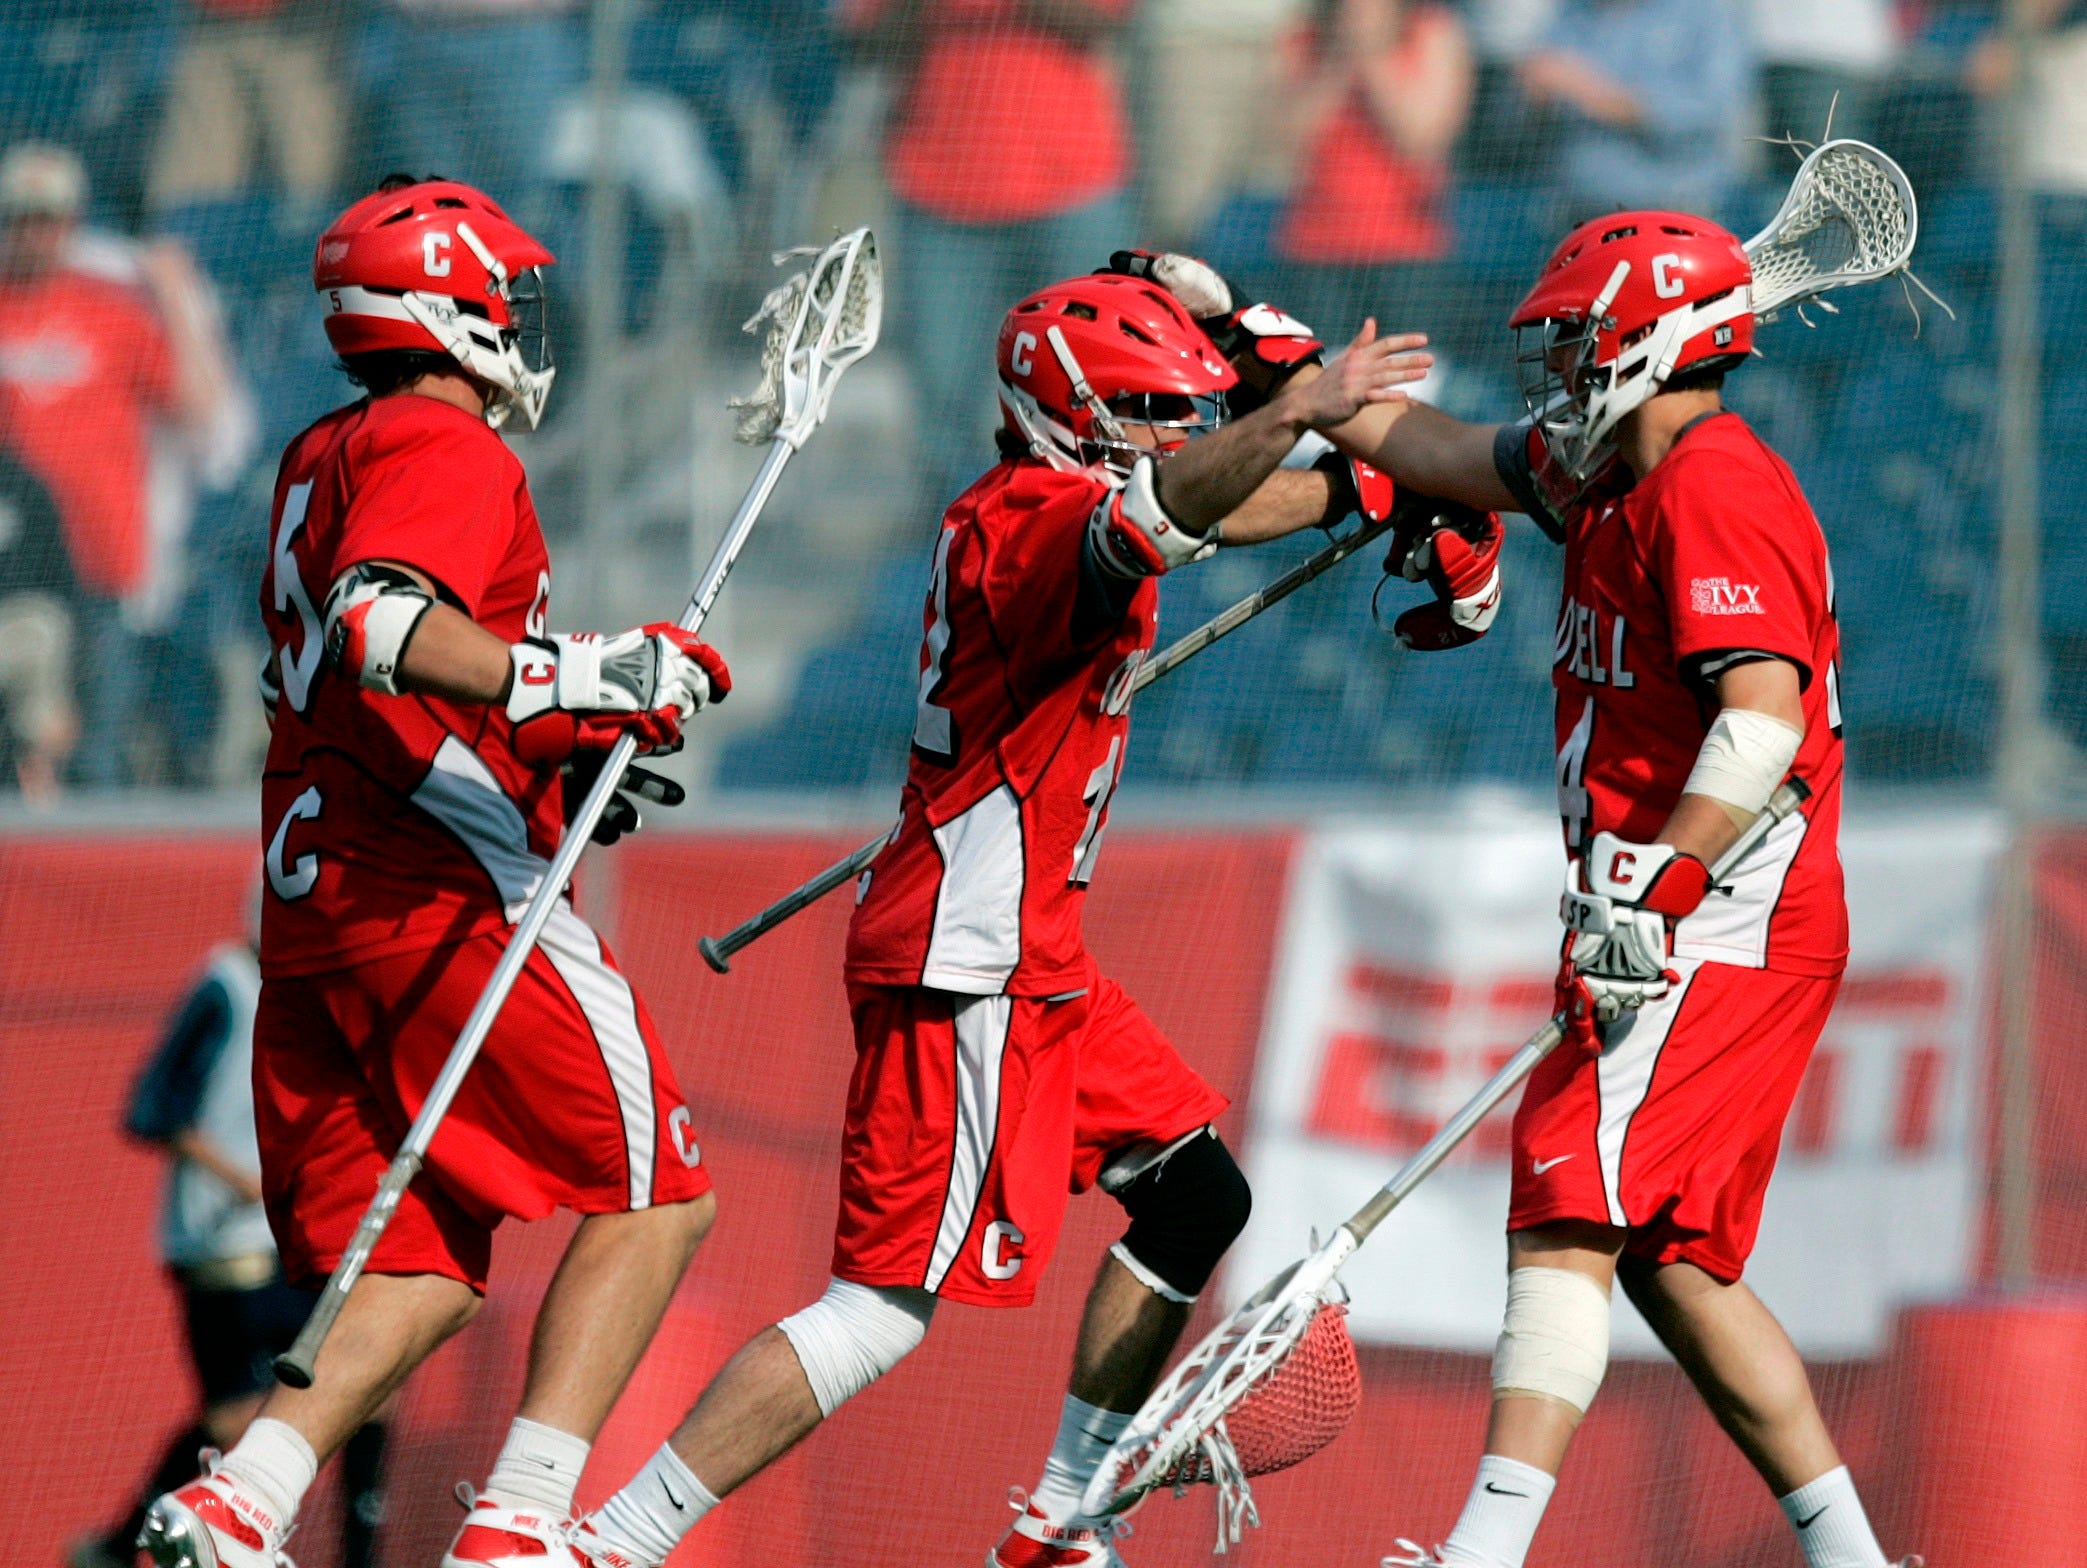 Cornell's Matt Moyer, center, and Pierce Derkac, left, celebrate with goalie Jake Myers after Cornell beat Virginia 15-6 in an NCAA Division 1 Men's lacrosse  semifinal game in Foxborough, Mass., Saturday, May 23, 2009.